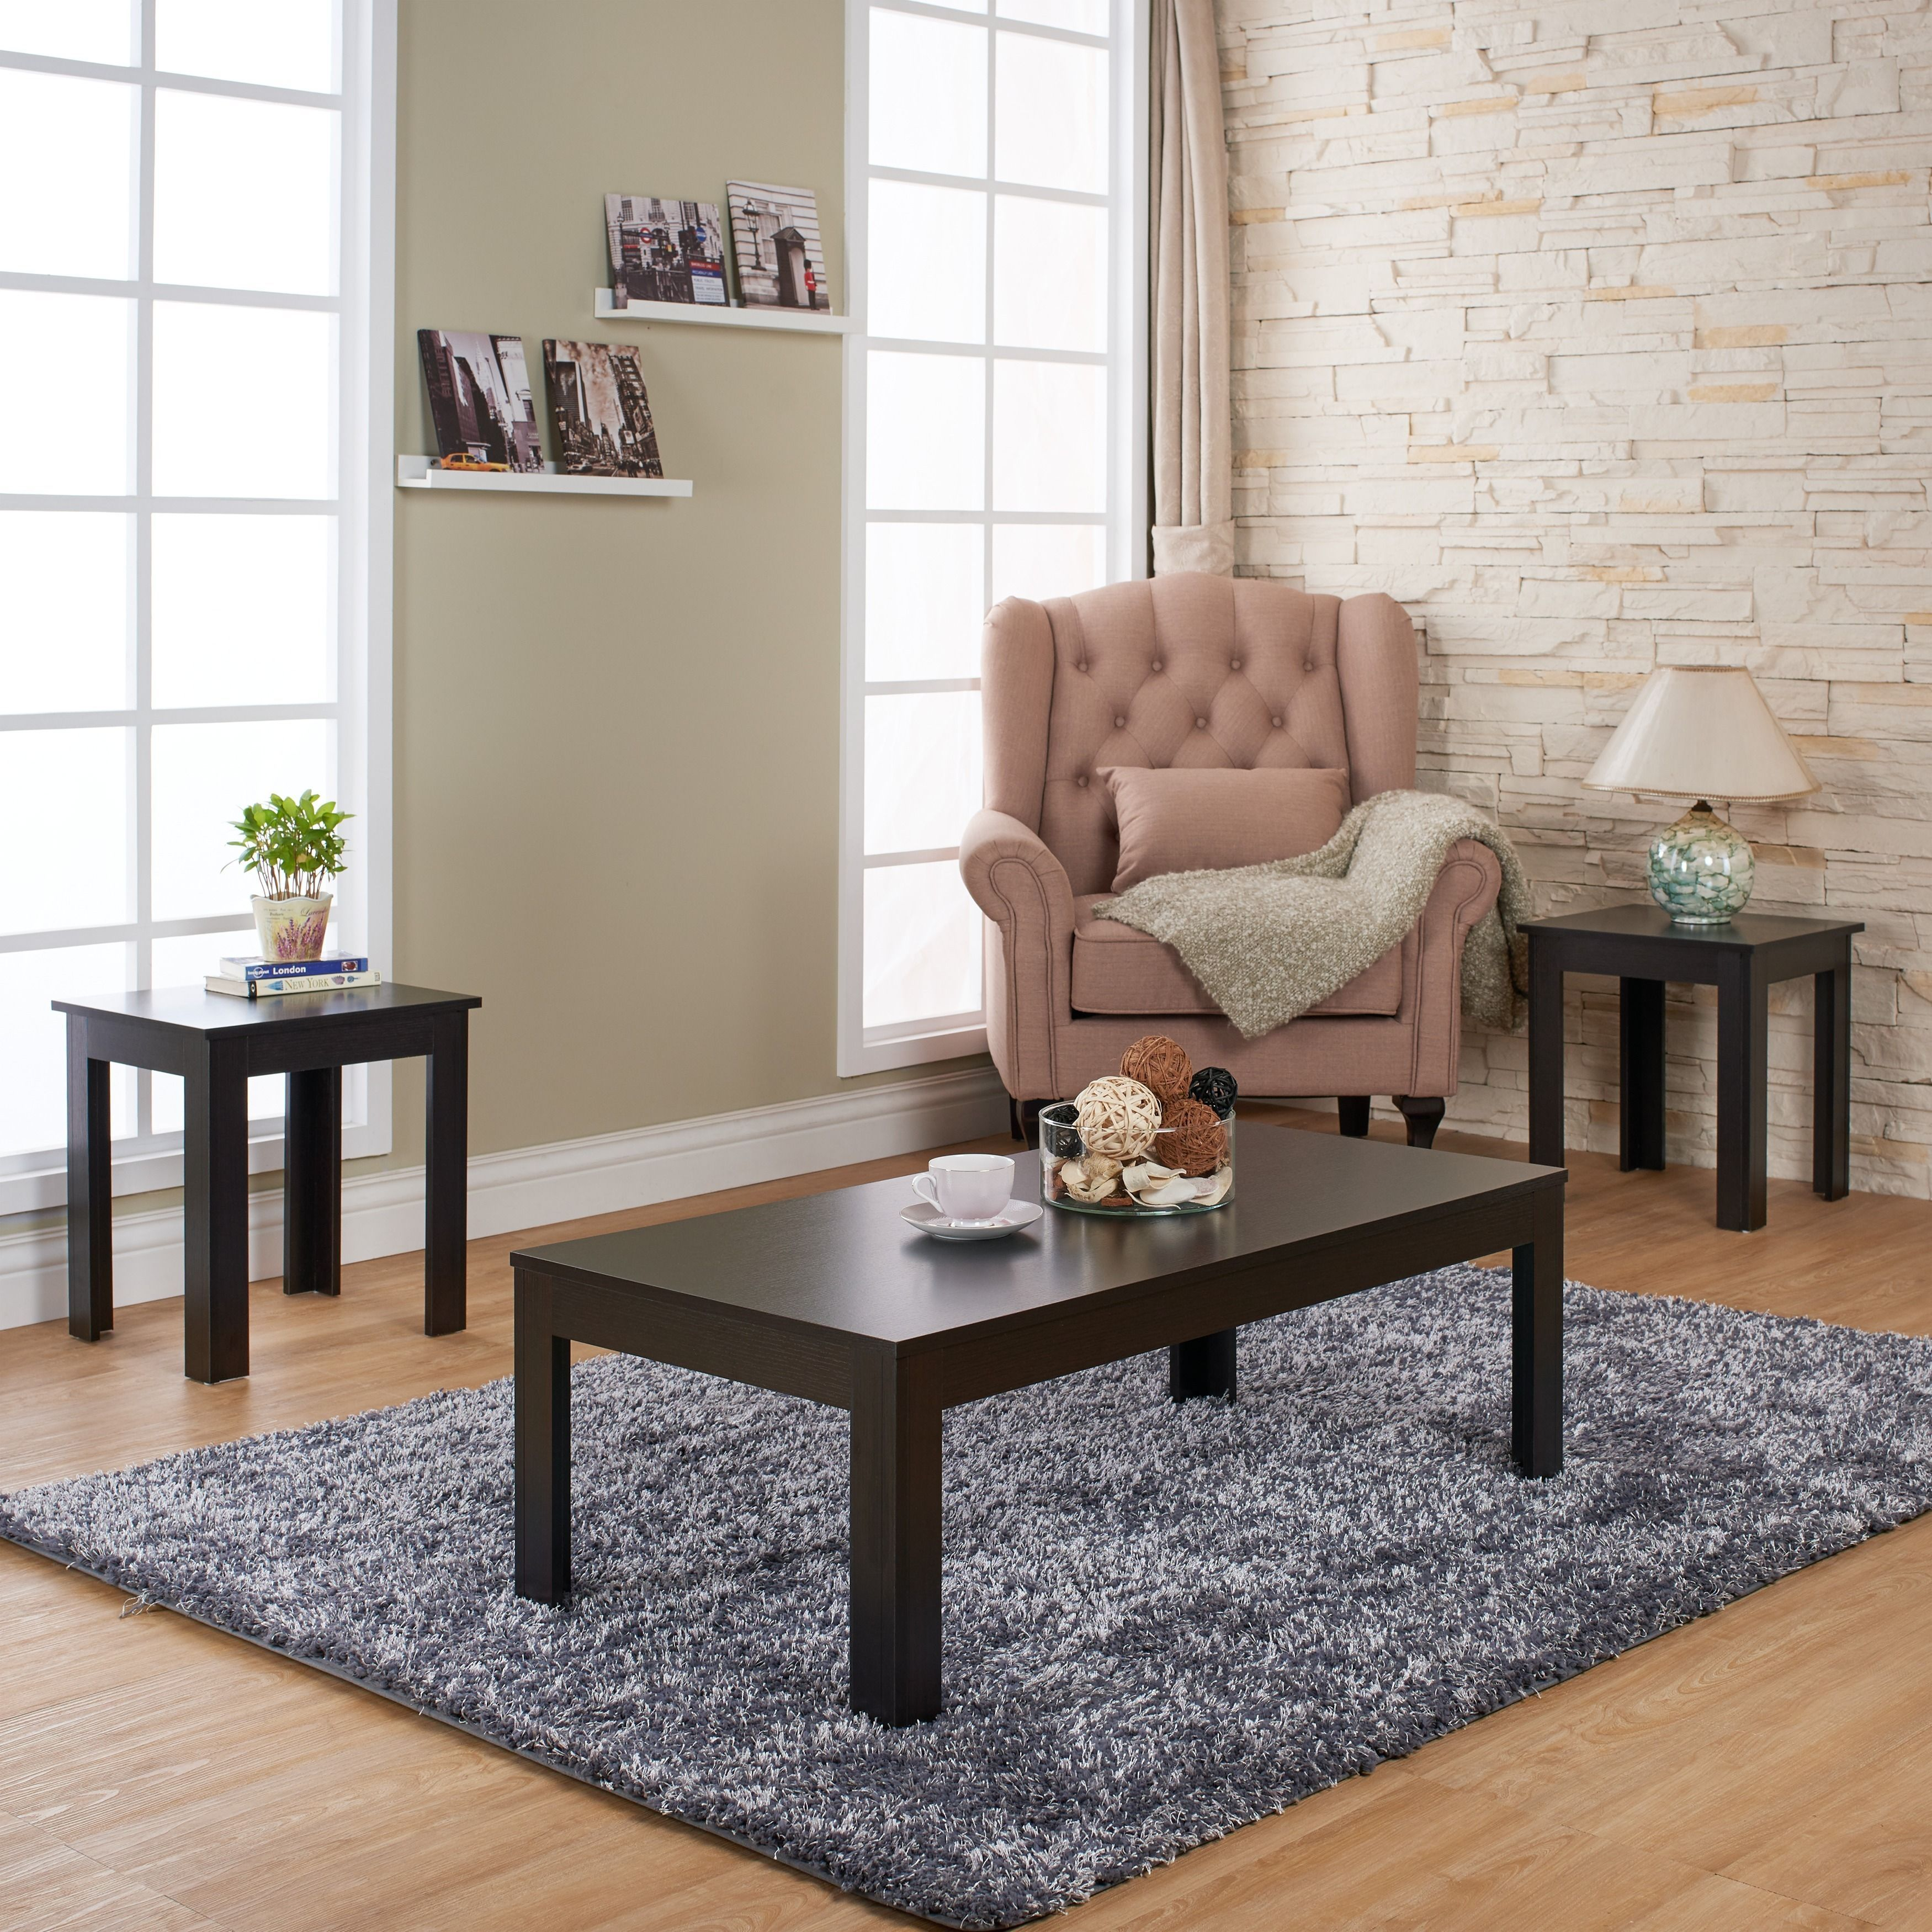 Furniture of America Artemie Modern 3-piece Coffee and End Table Set (Cappuccino), Brown